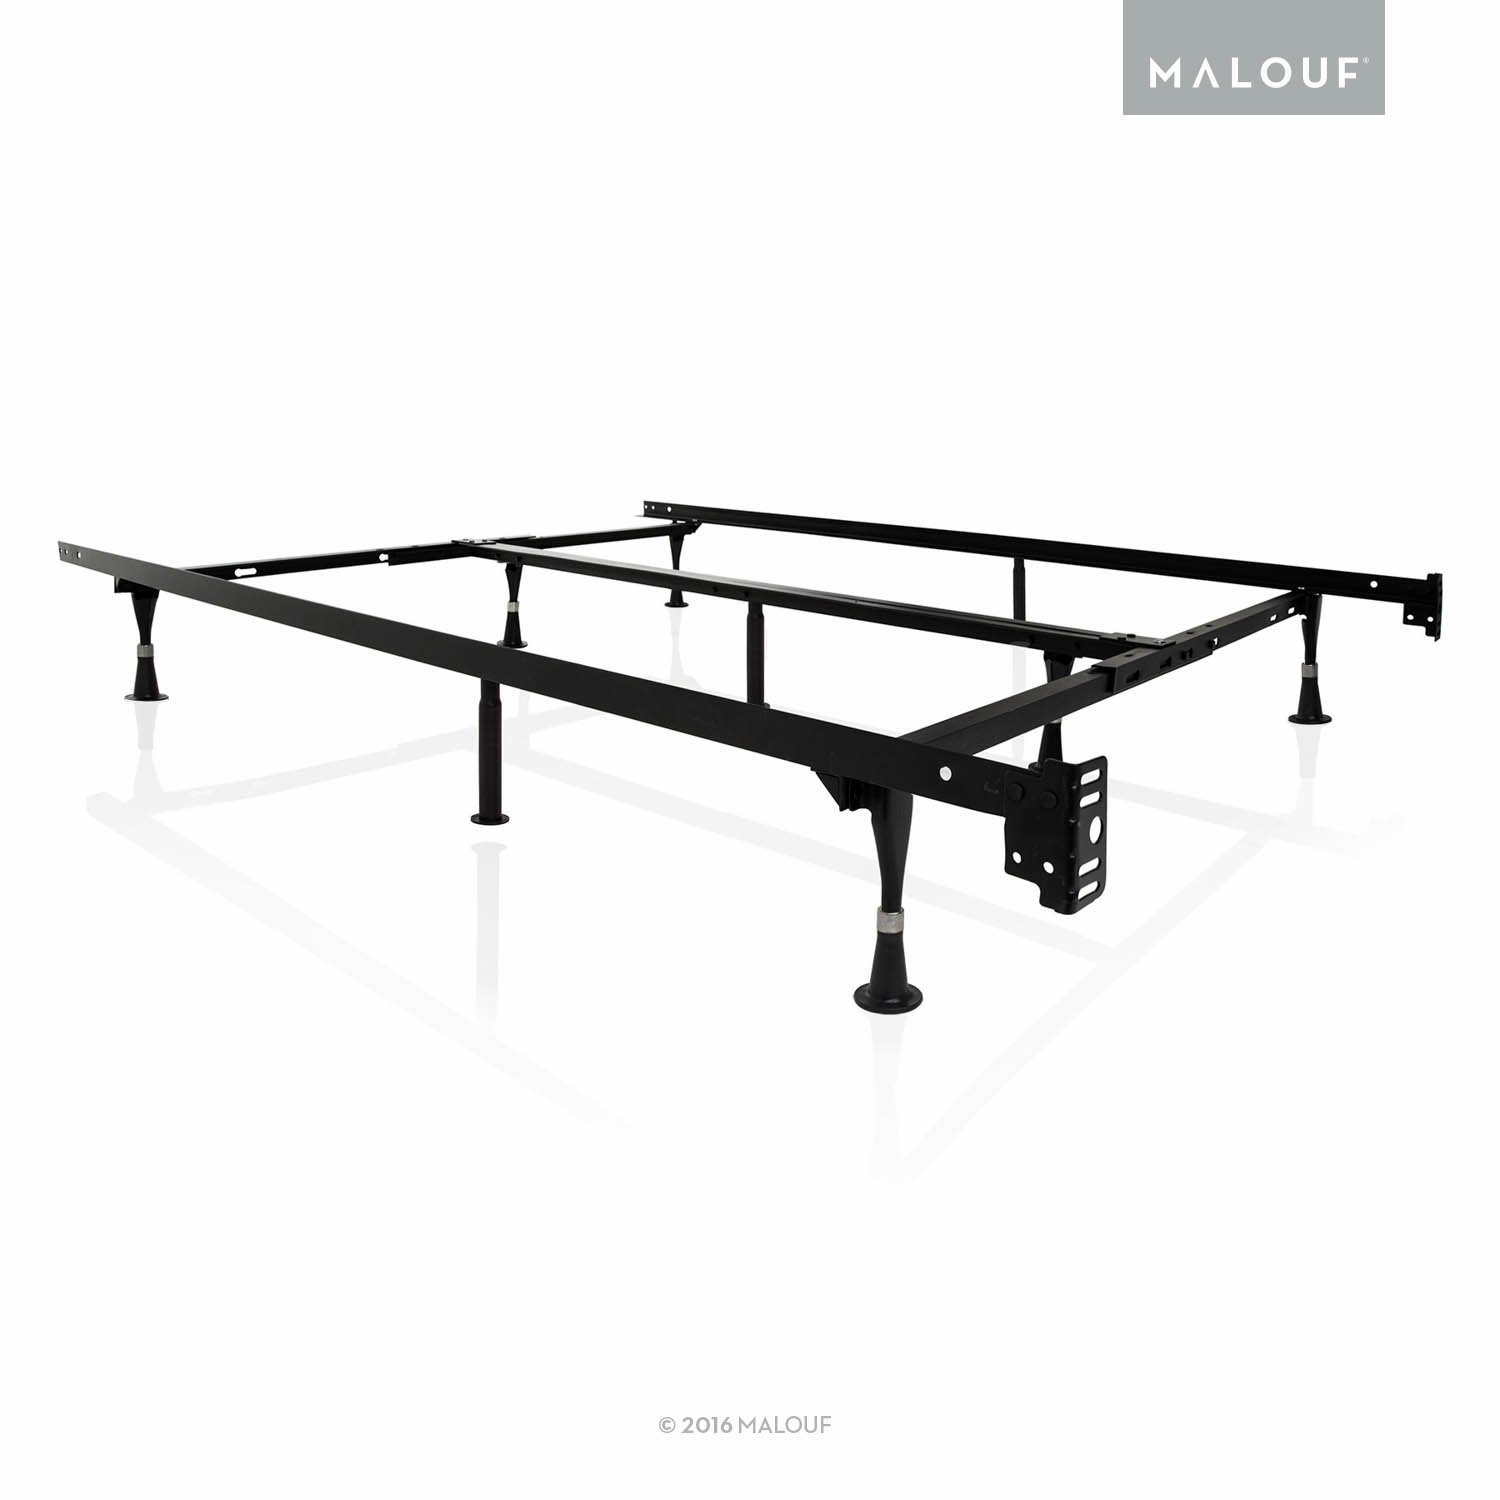 MALOUF STRUCTURES Heavy Duty 9-Leg Adjustable Metal Bed Frame with Double Center Support and Glides Only - UNIVERSAL (Cal King, King, Queen, Full XL, Full, Twin XL, Twin) by MALOUF (Image #1)